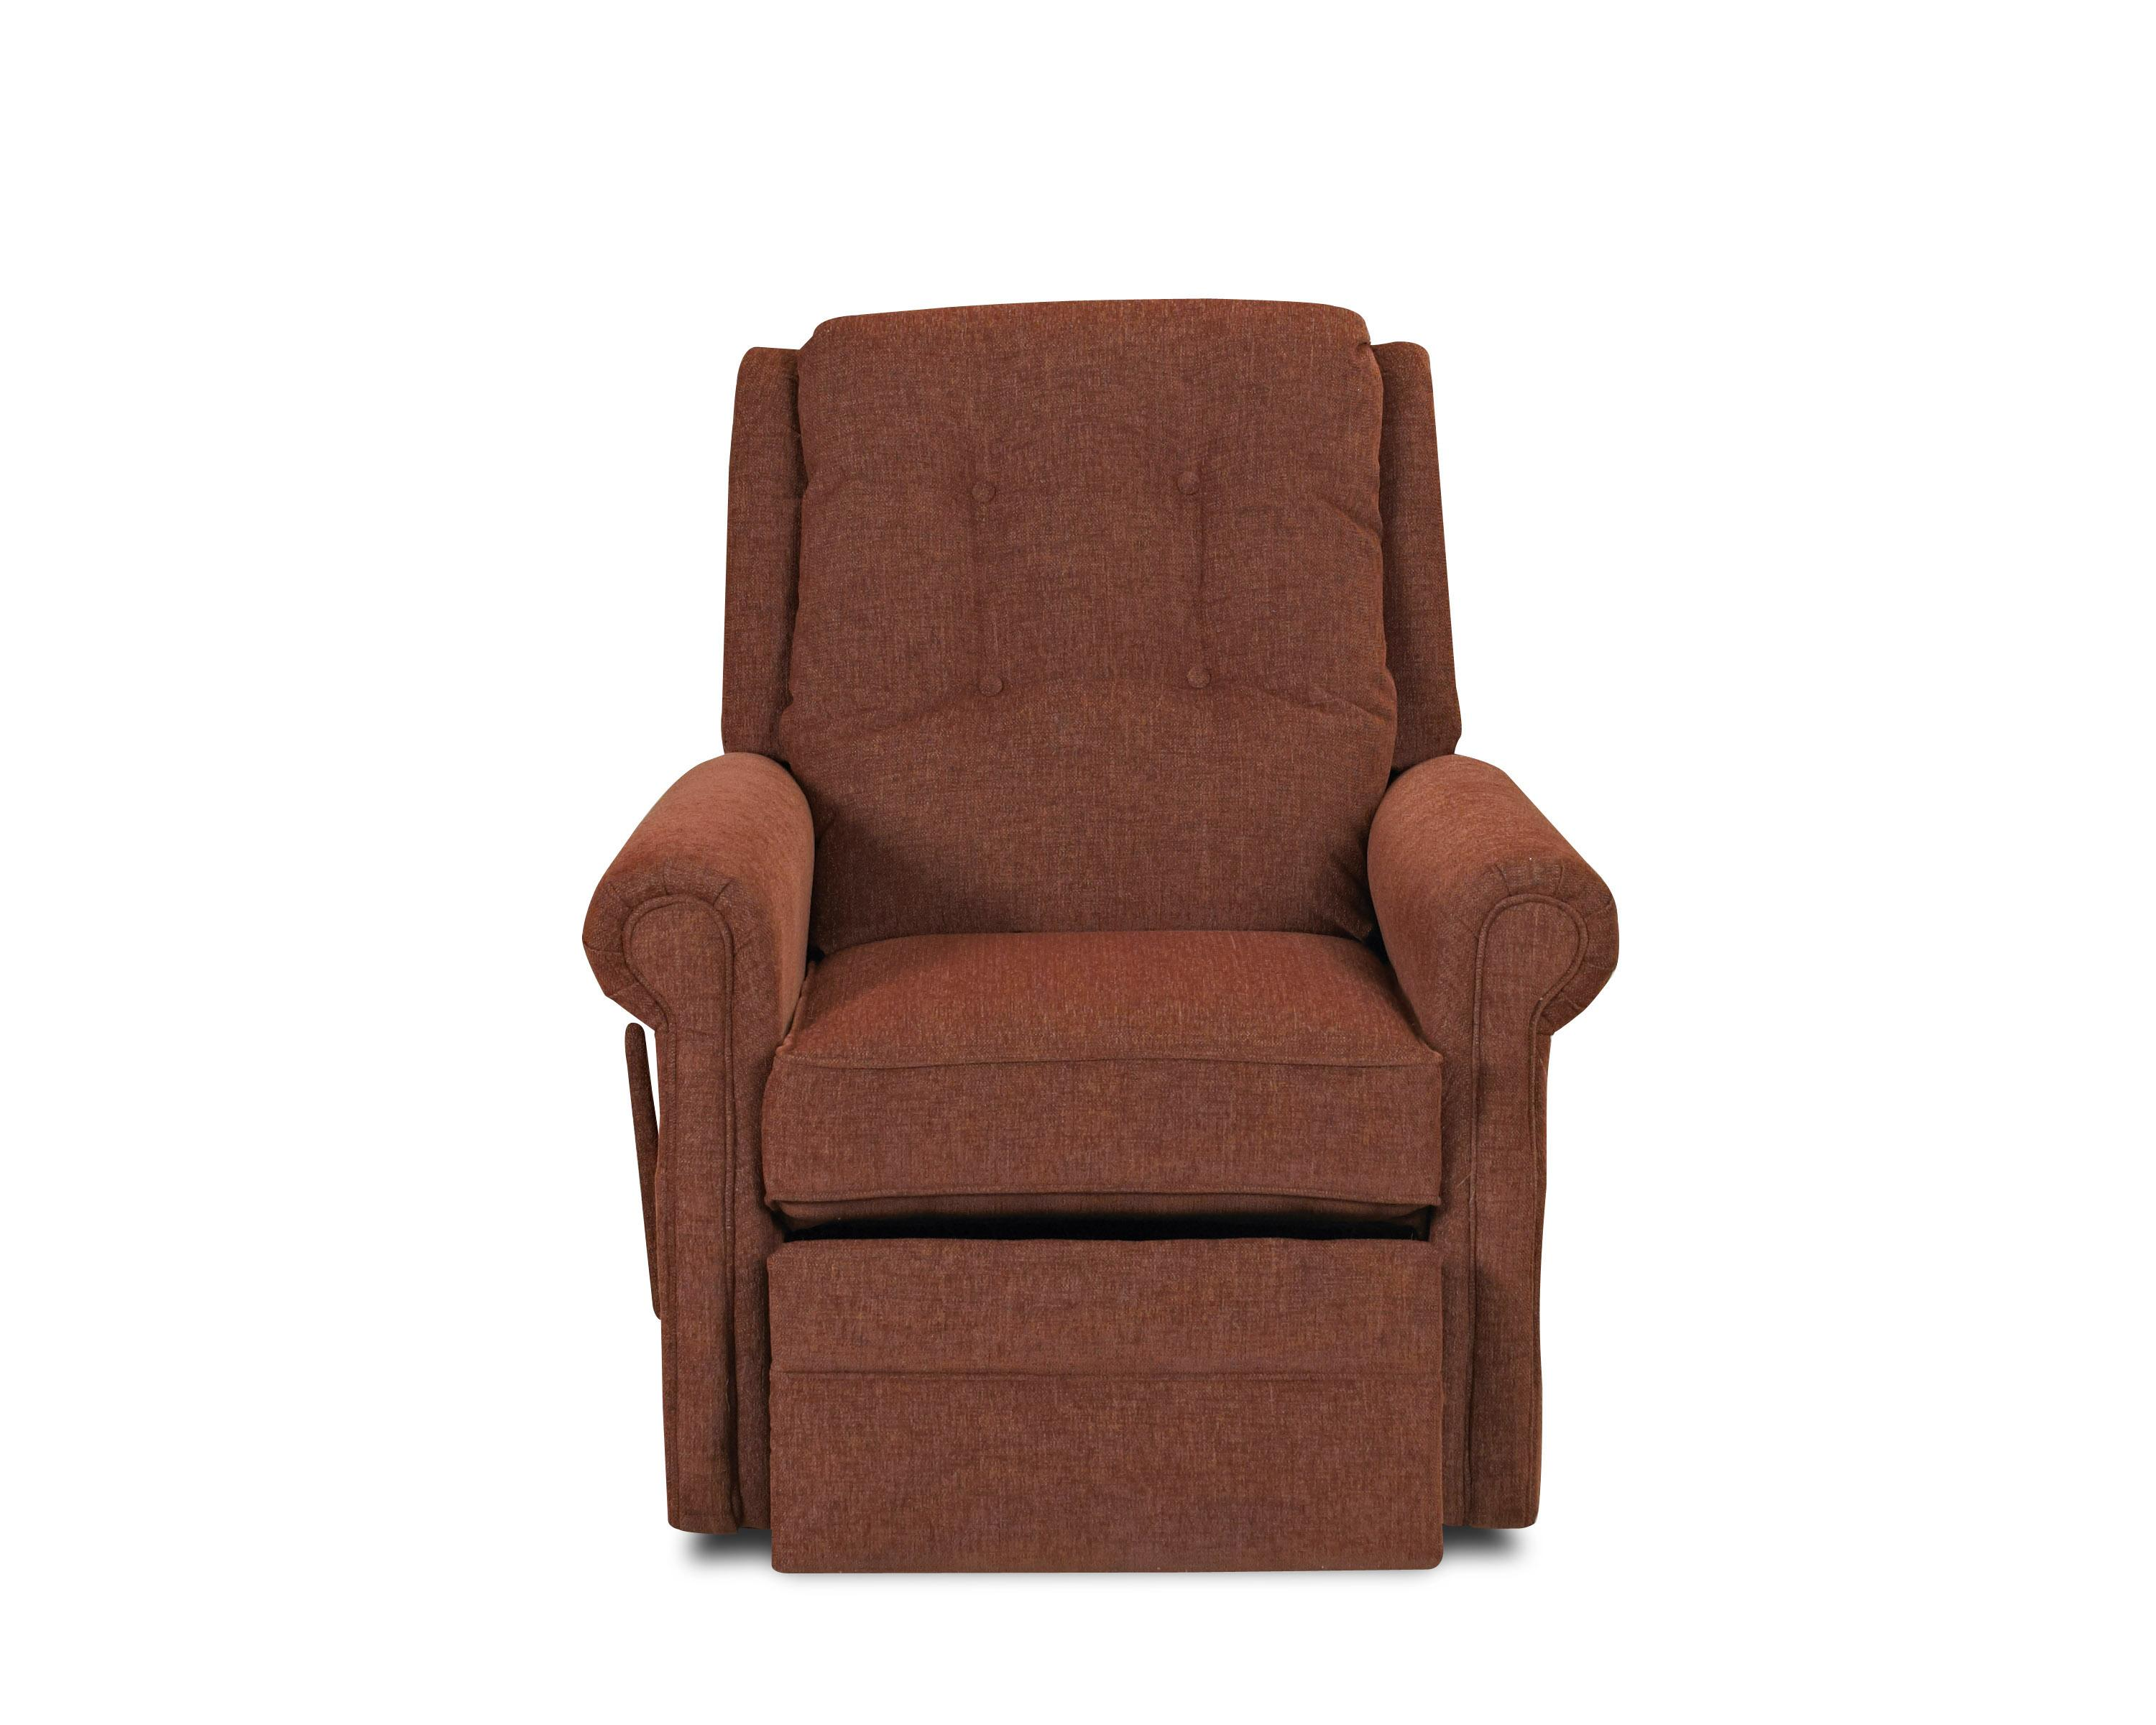 rocking reclining chair white spandex covers bulk transitional manual with button